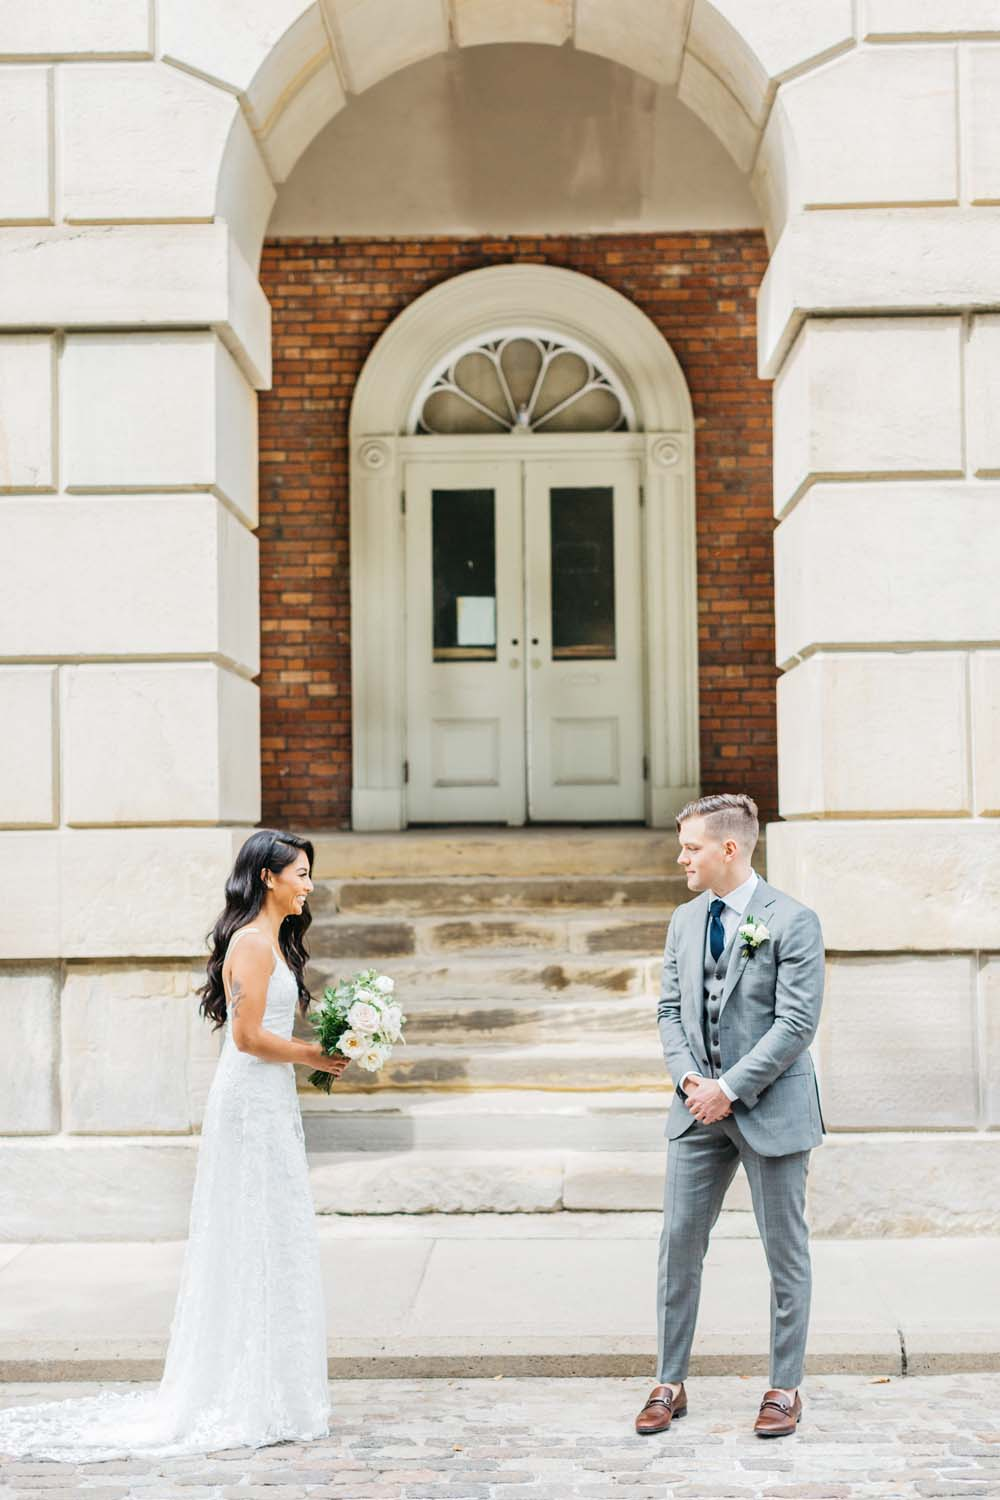 A Bright and Airy September Wedding in Toronto, Ontario - First Look